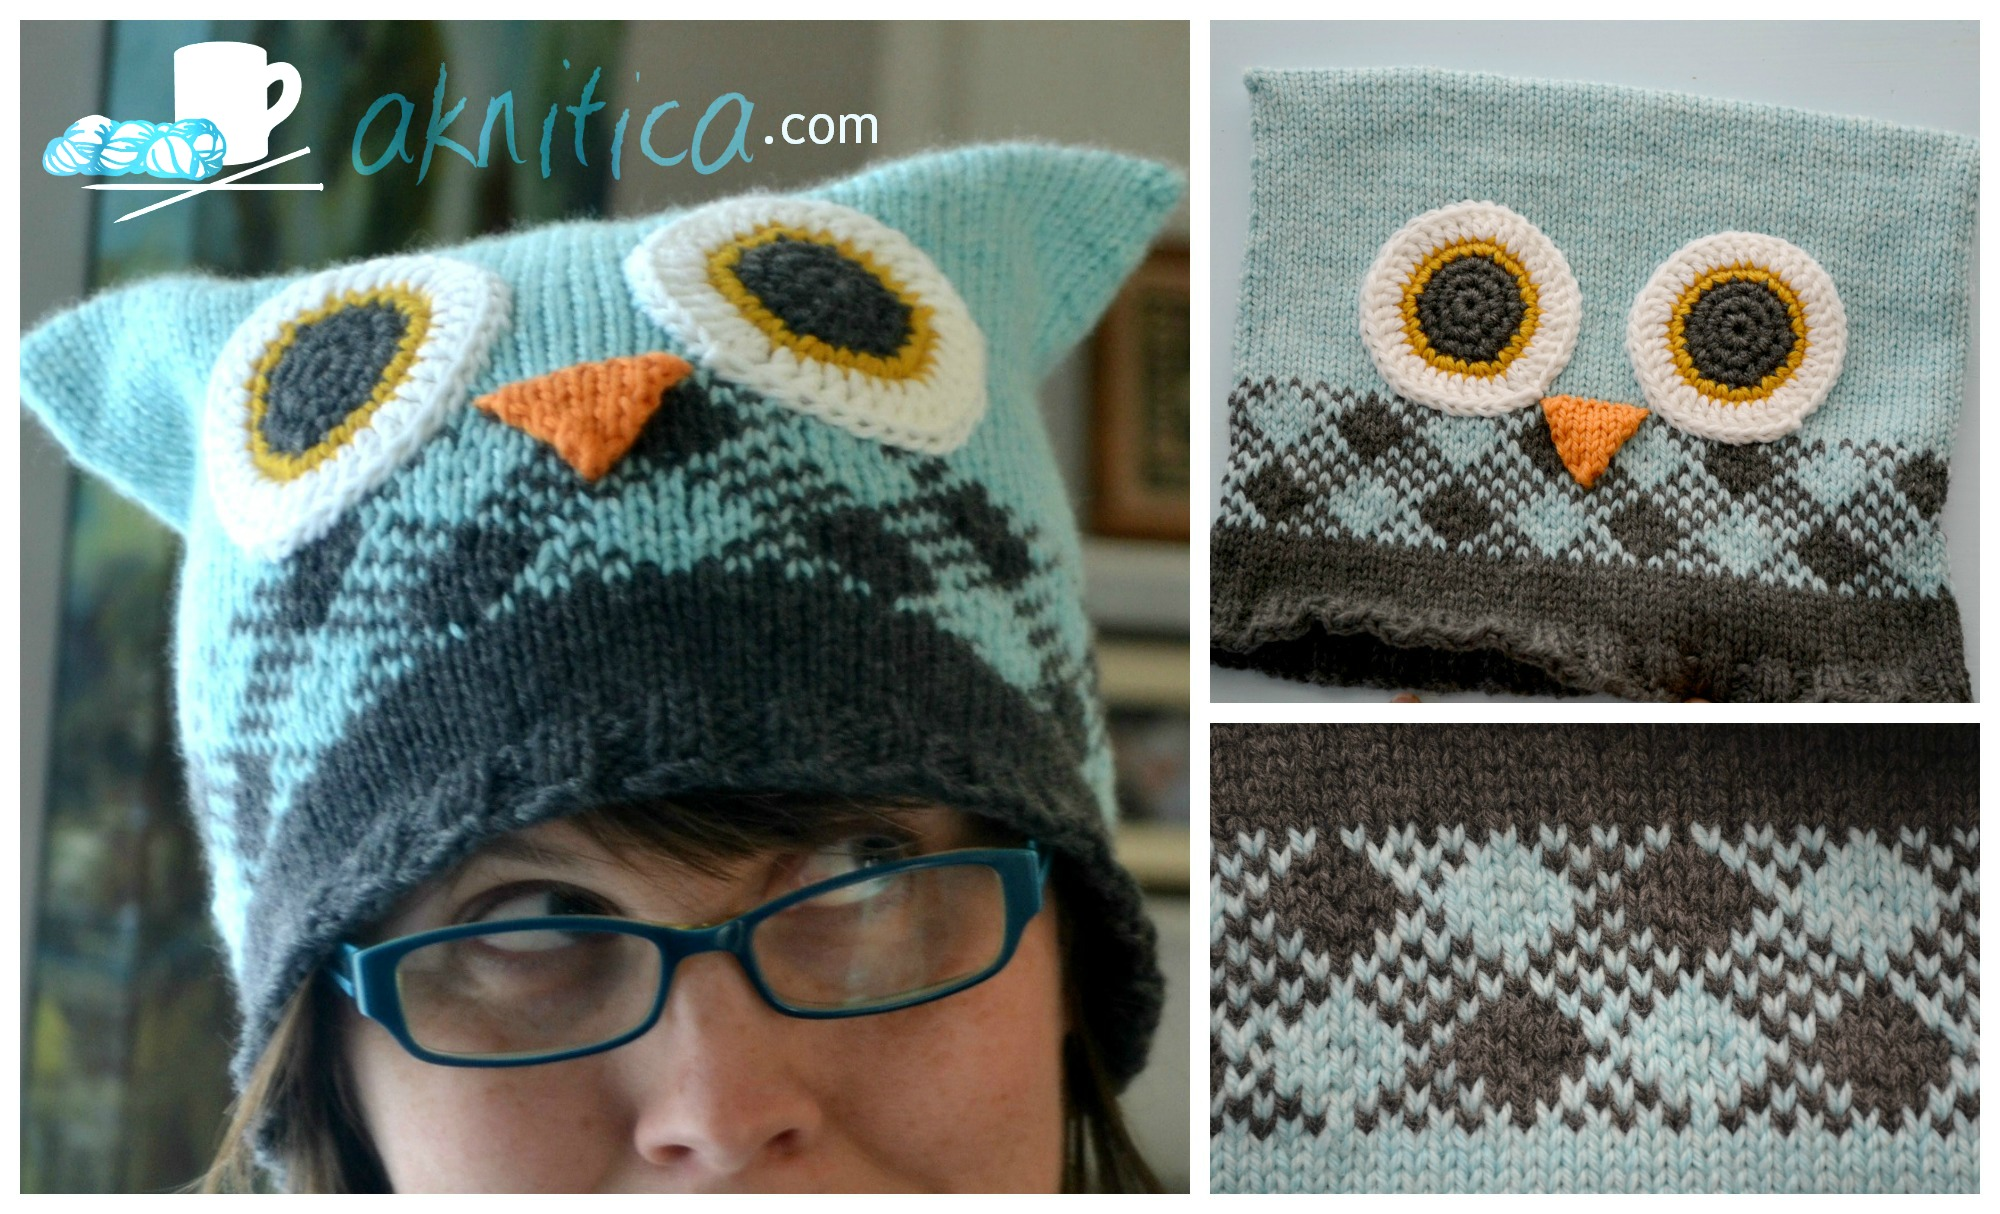 Free Preemie Hats, Upcoming Patterns, and Portraits. Oh My! - aknitica